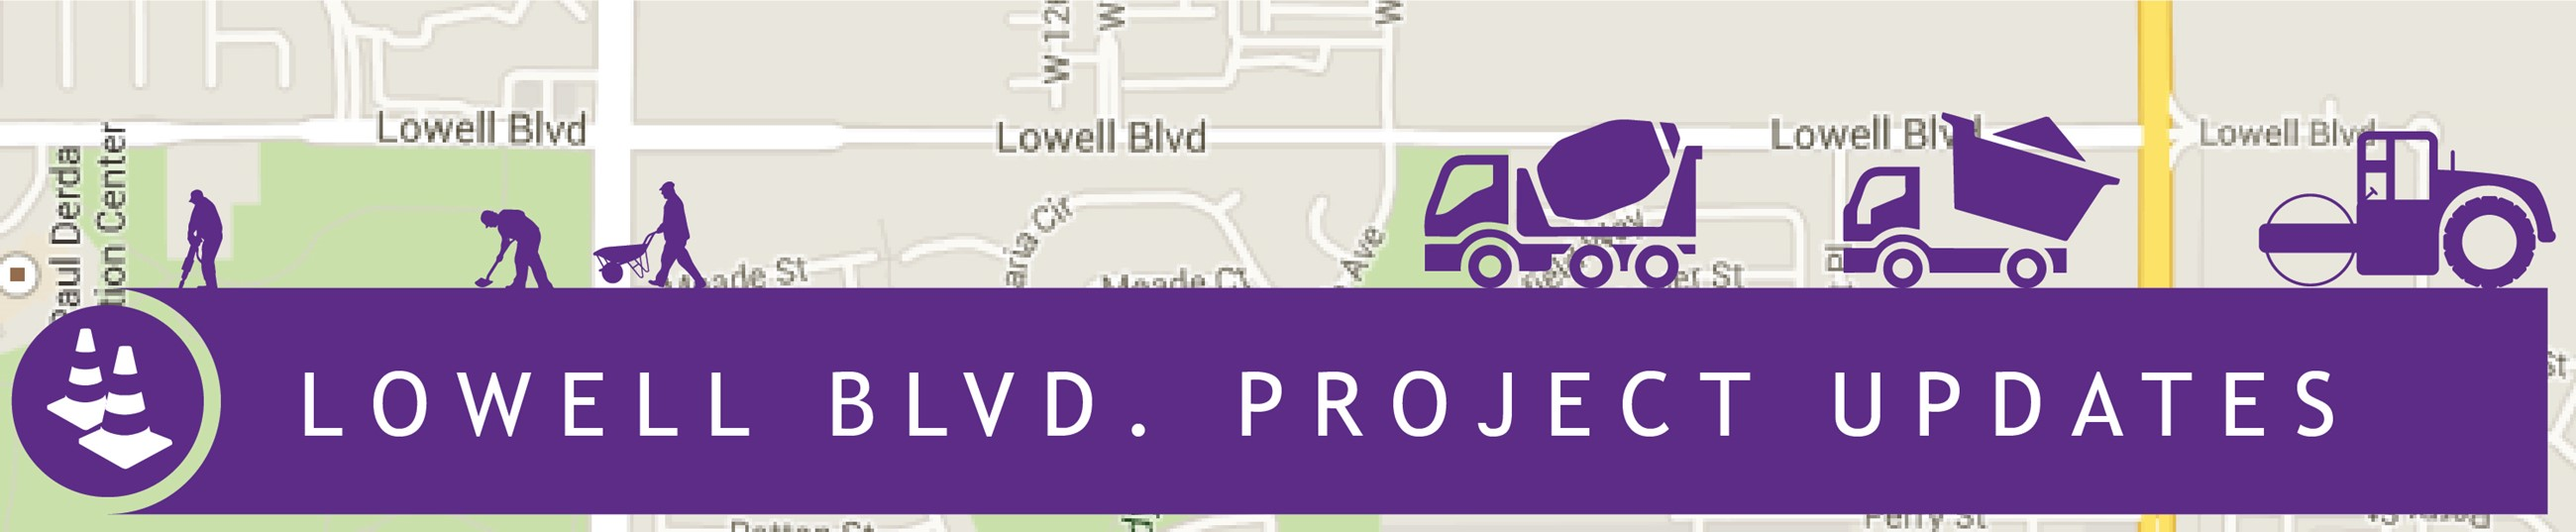 Lowell Blvd. Project Updates